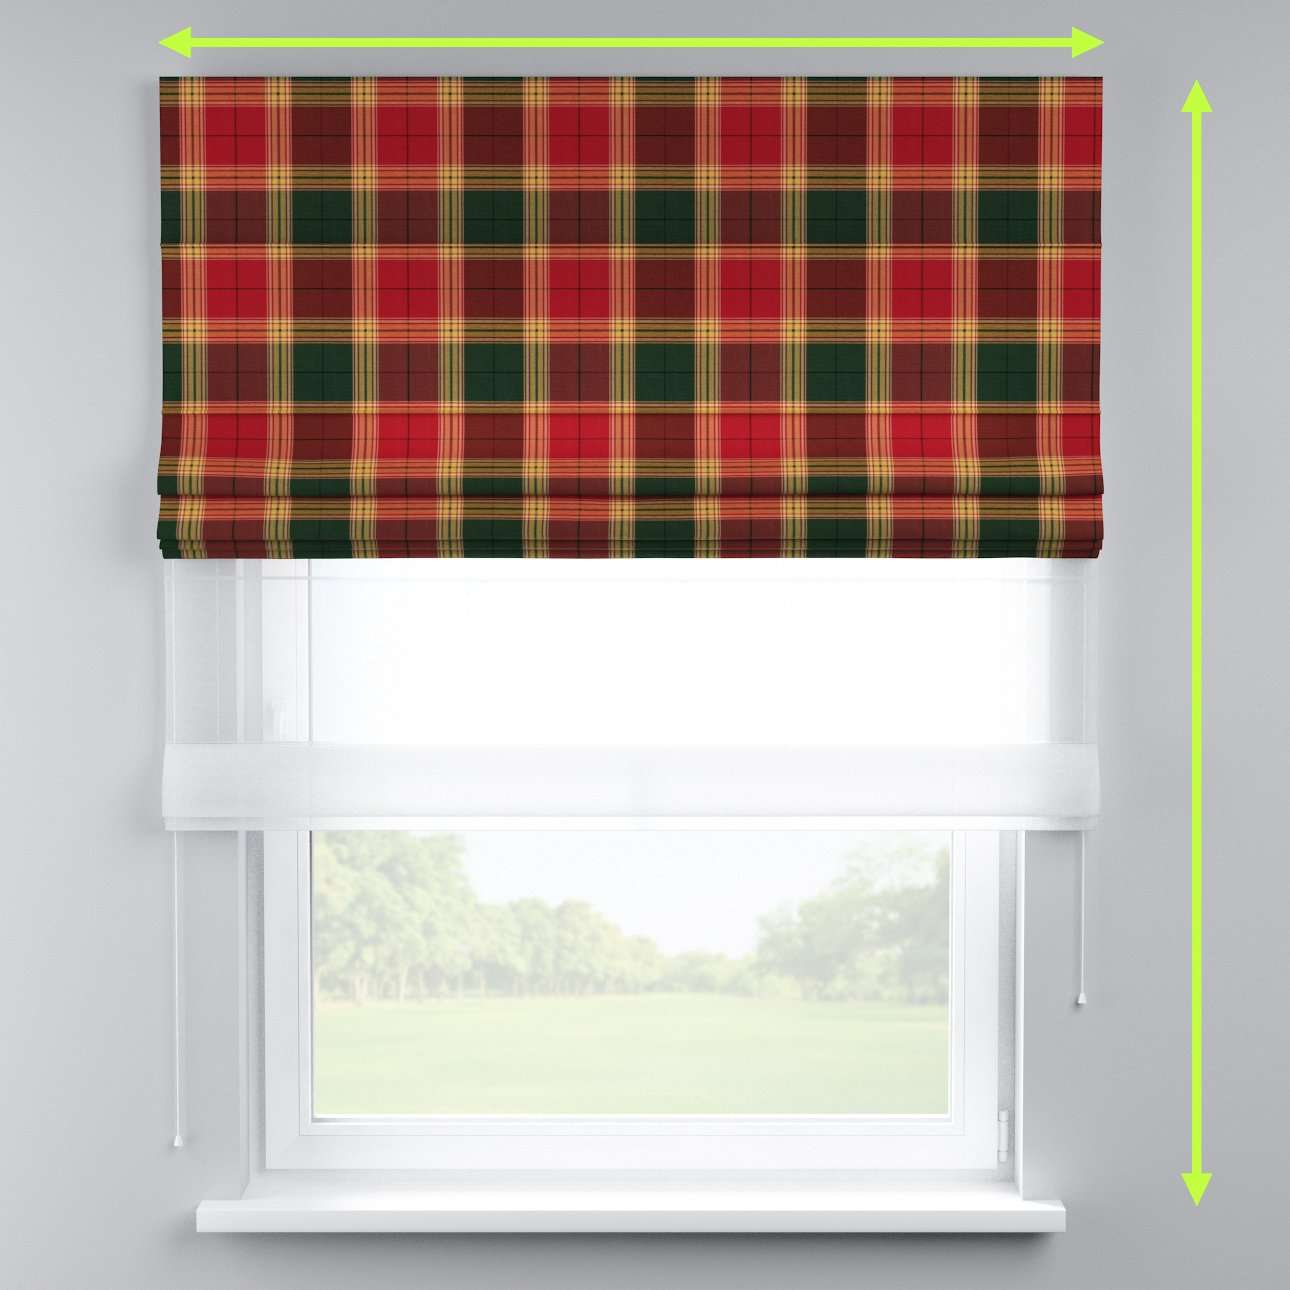 Voile and fabric roman blind (DUO II) in collection Bristol, fabric: 125-48